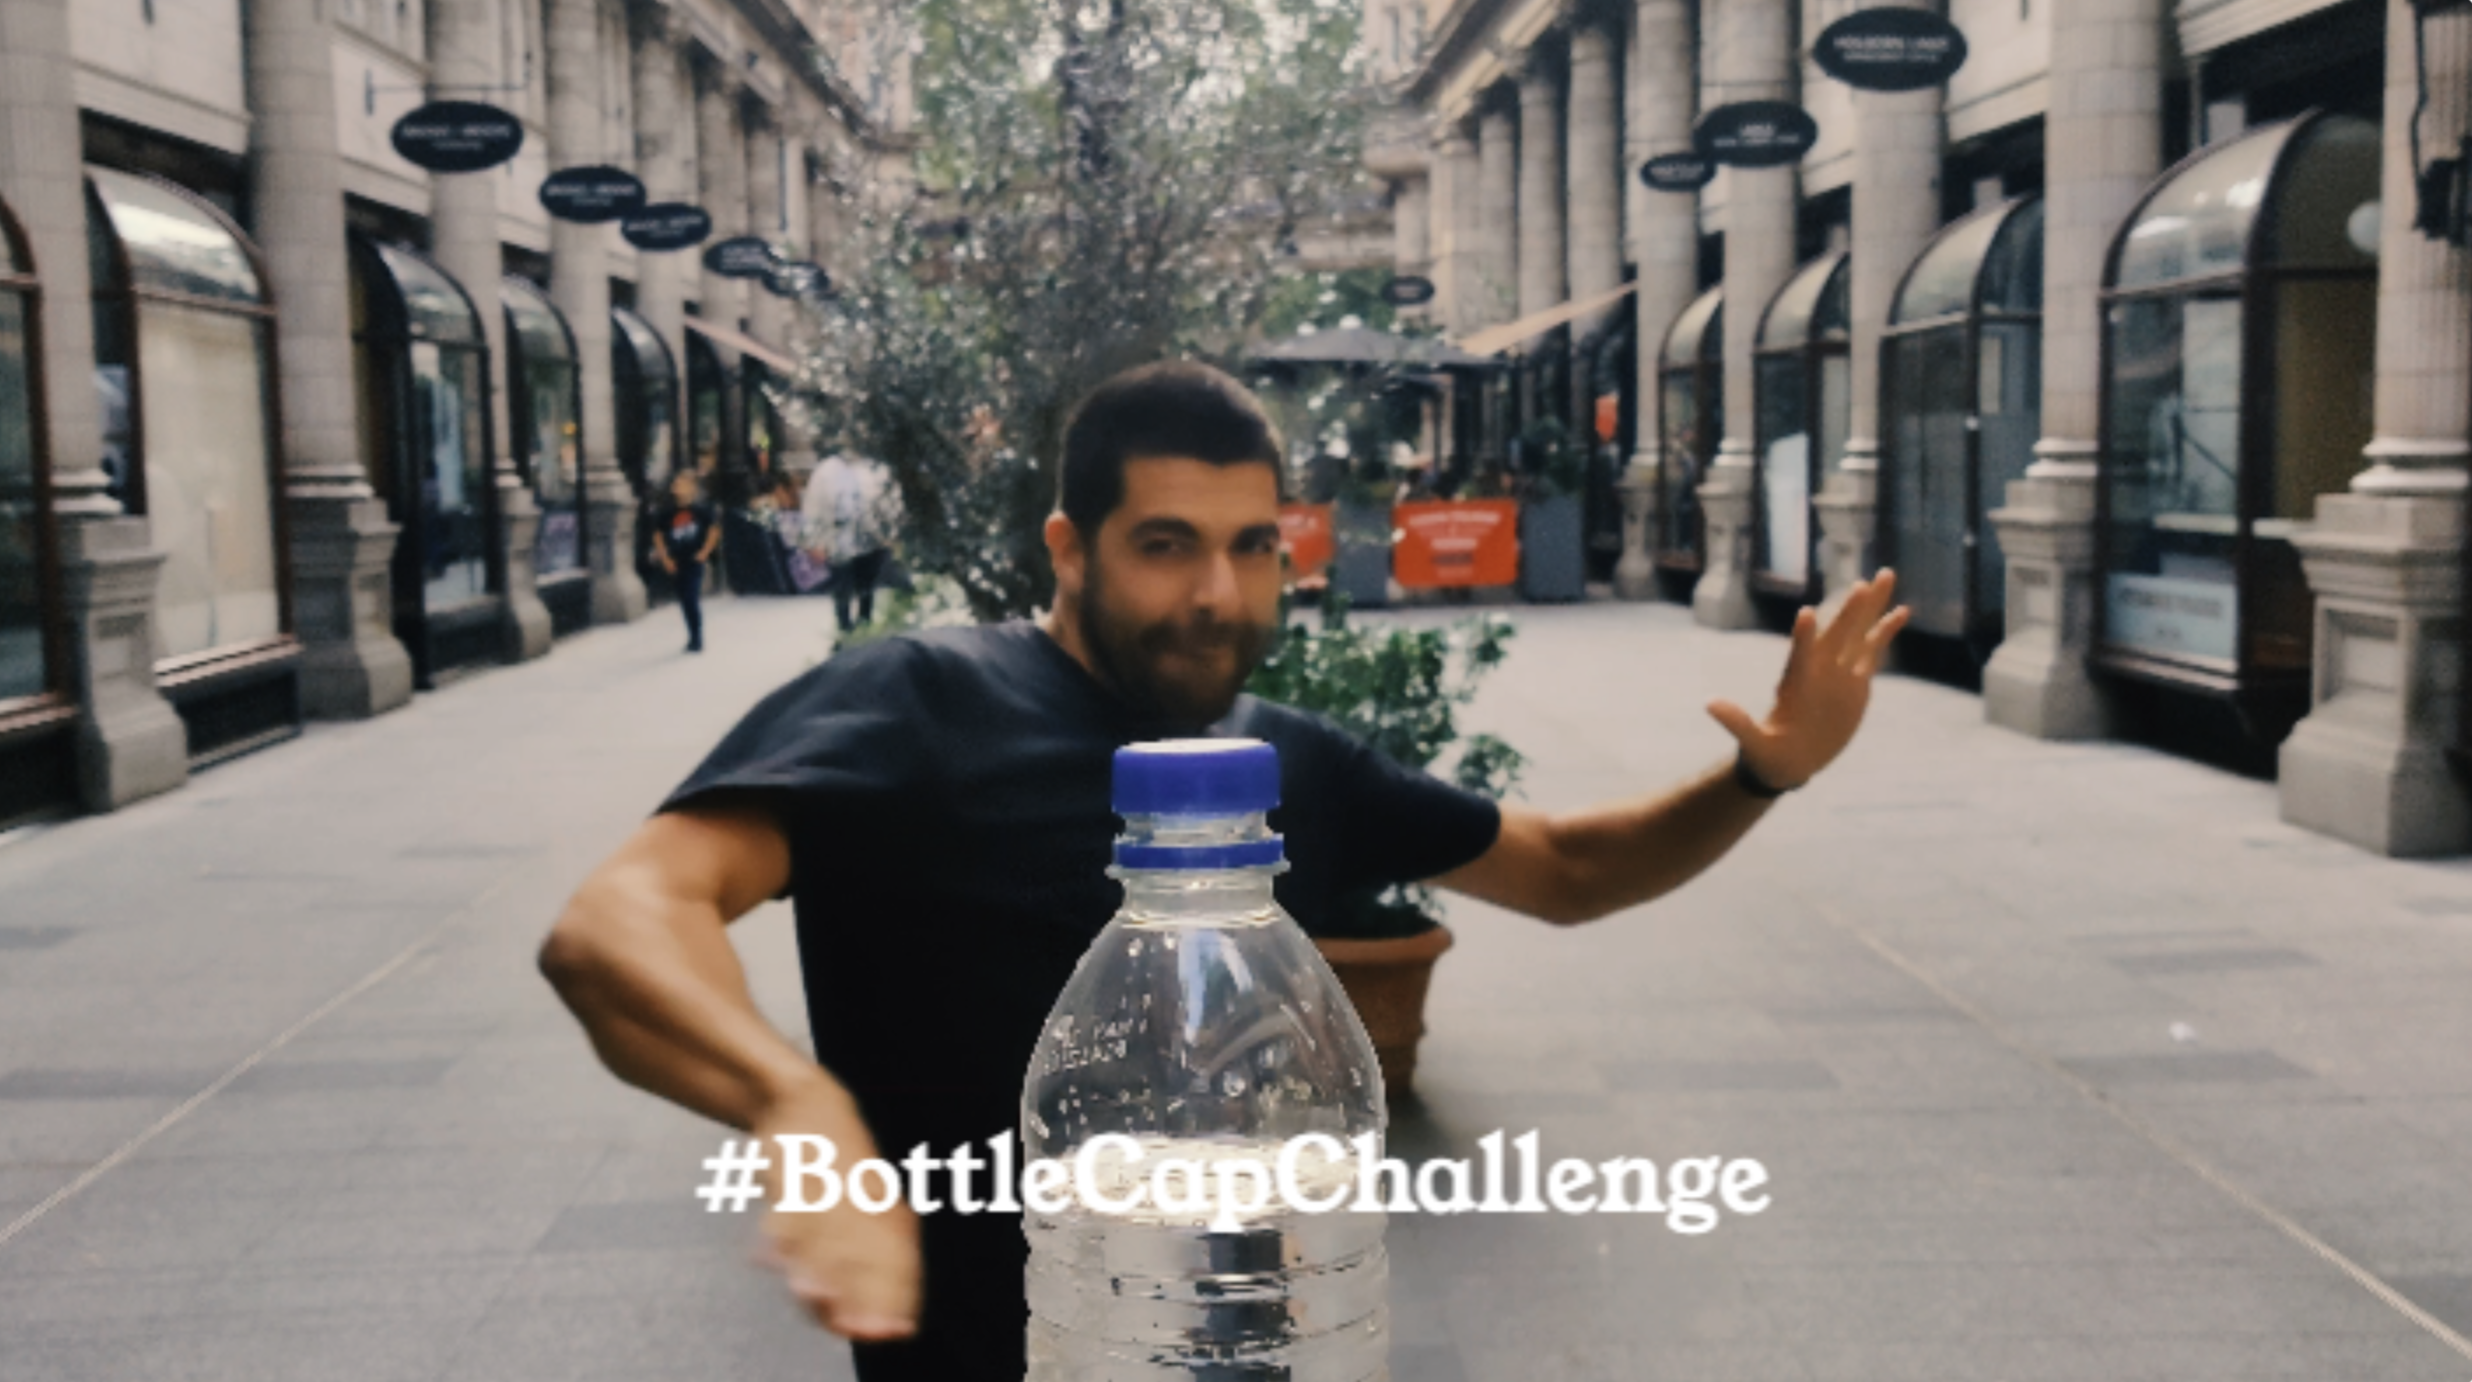 How to do the bottle cap challenge